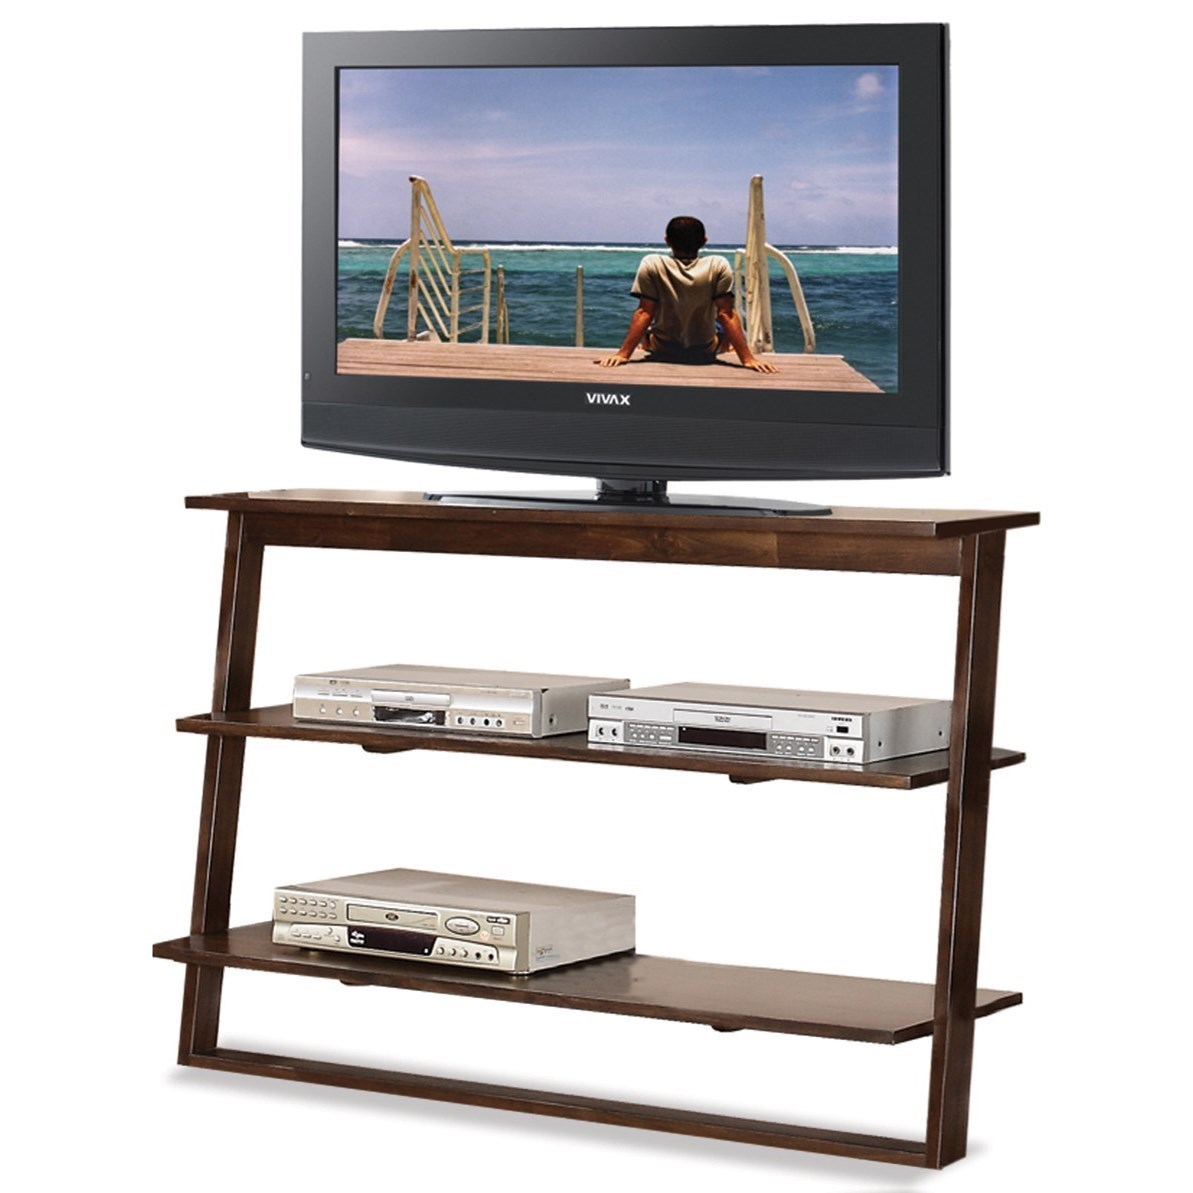 Attractive Riverside Furniture Lean Living Leaning TV Stand With 2 Shelves